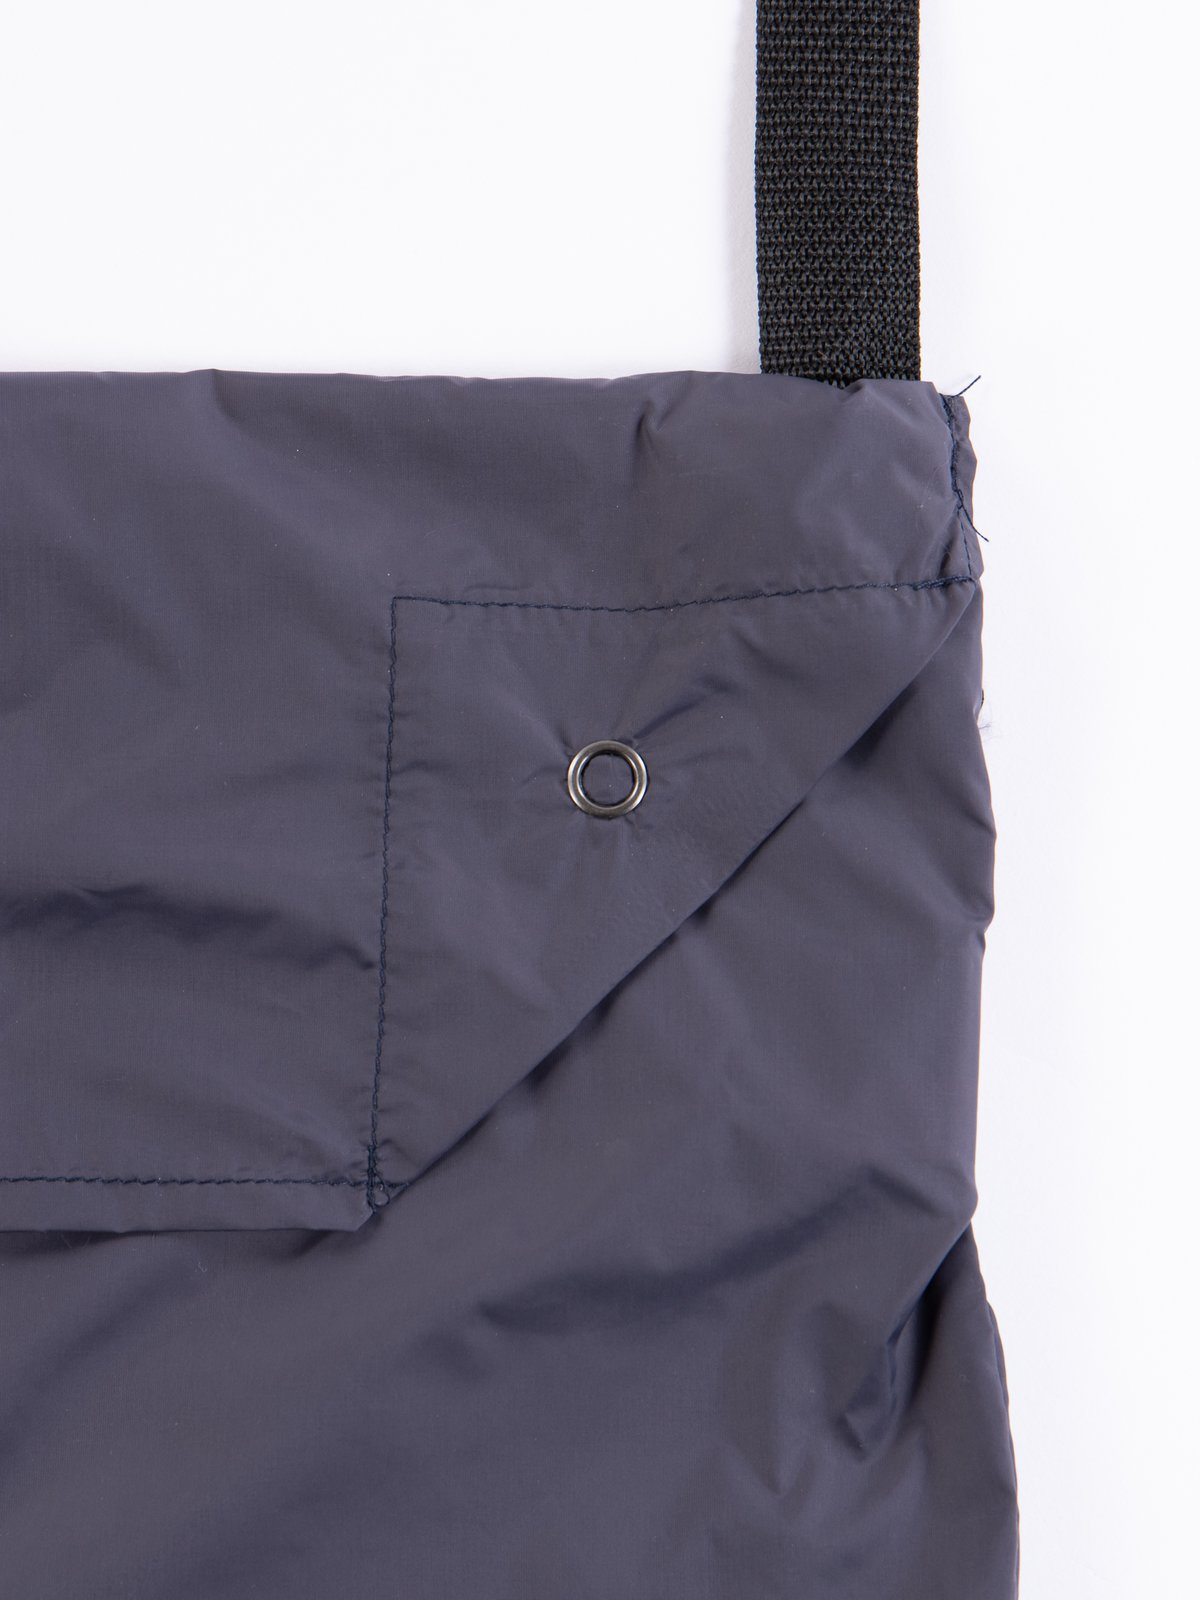 Dark Navy Nylon Taffeta Shoulder Pouch - Image 3